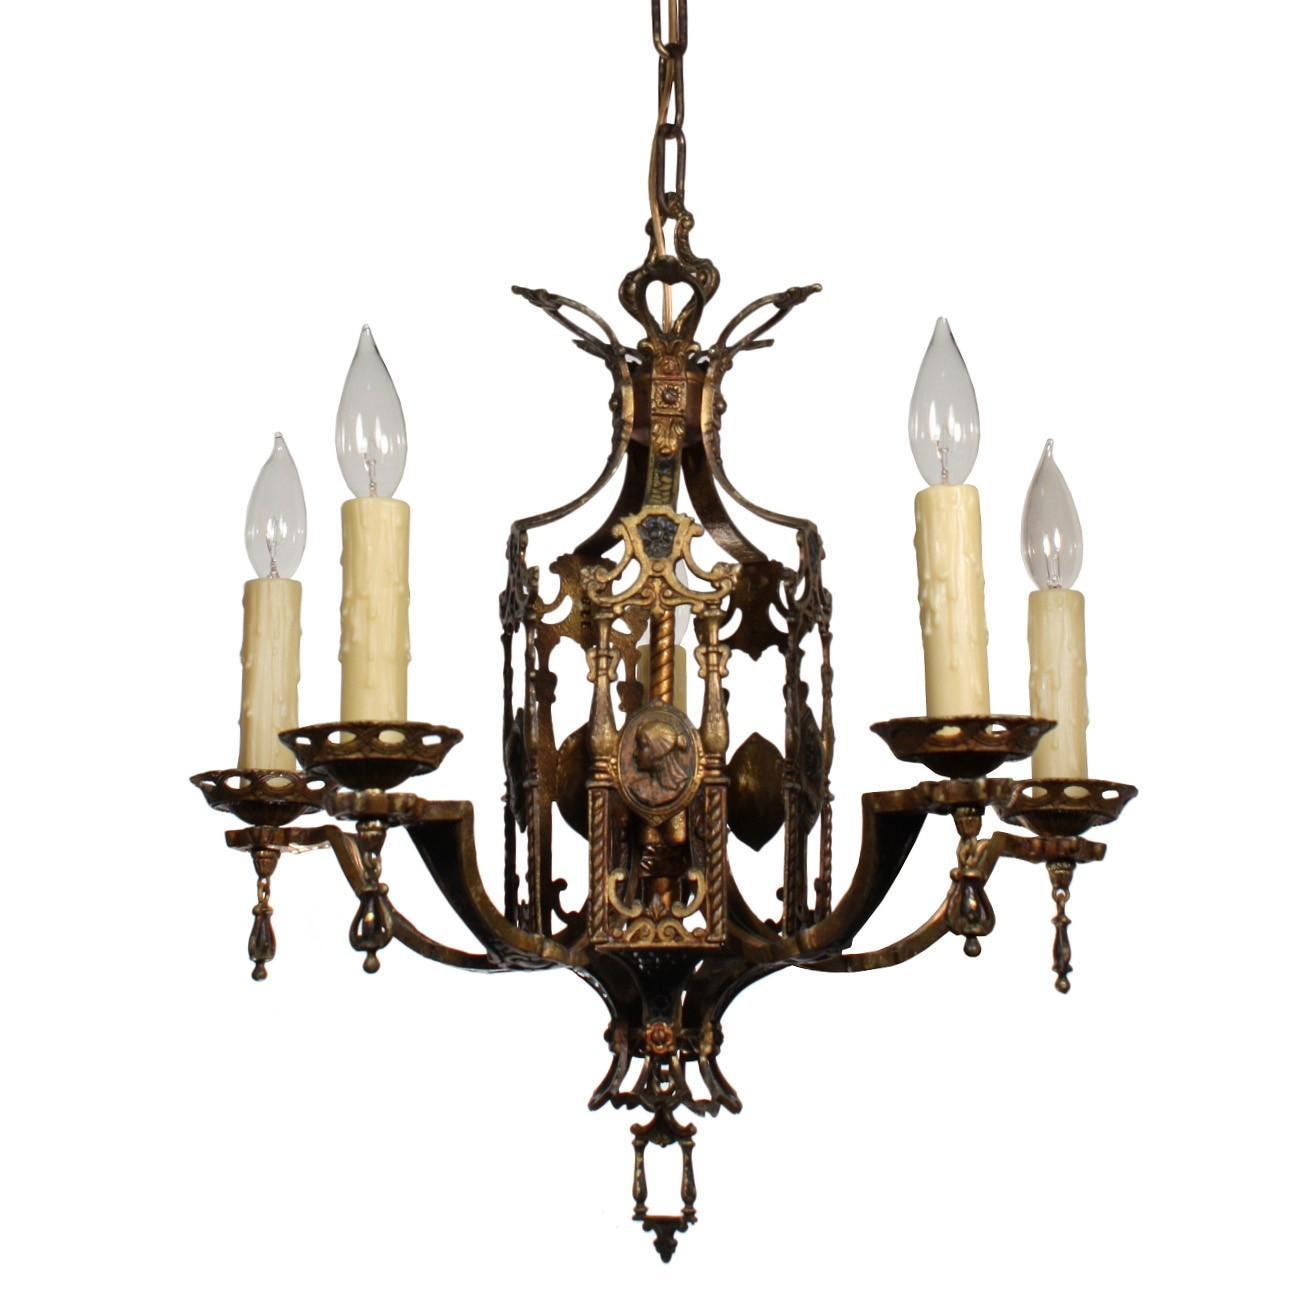 Stunning Antique Egyptian Revival Figural Chandelier With Cameos With Egyptian Chandelier (Image 15 of 15)